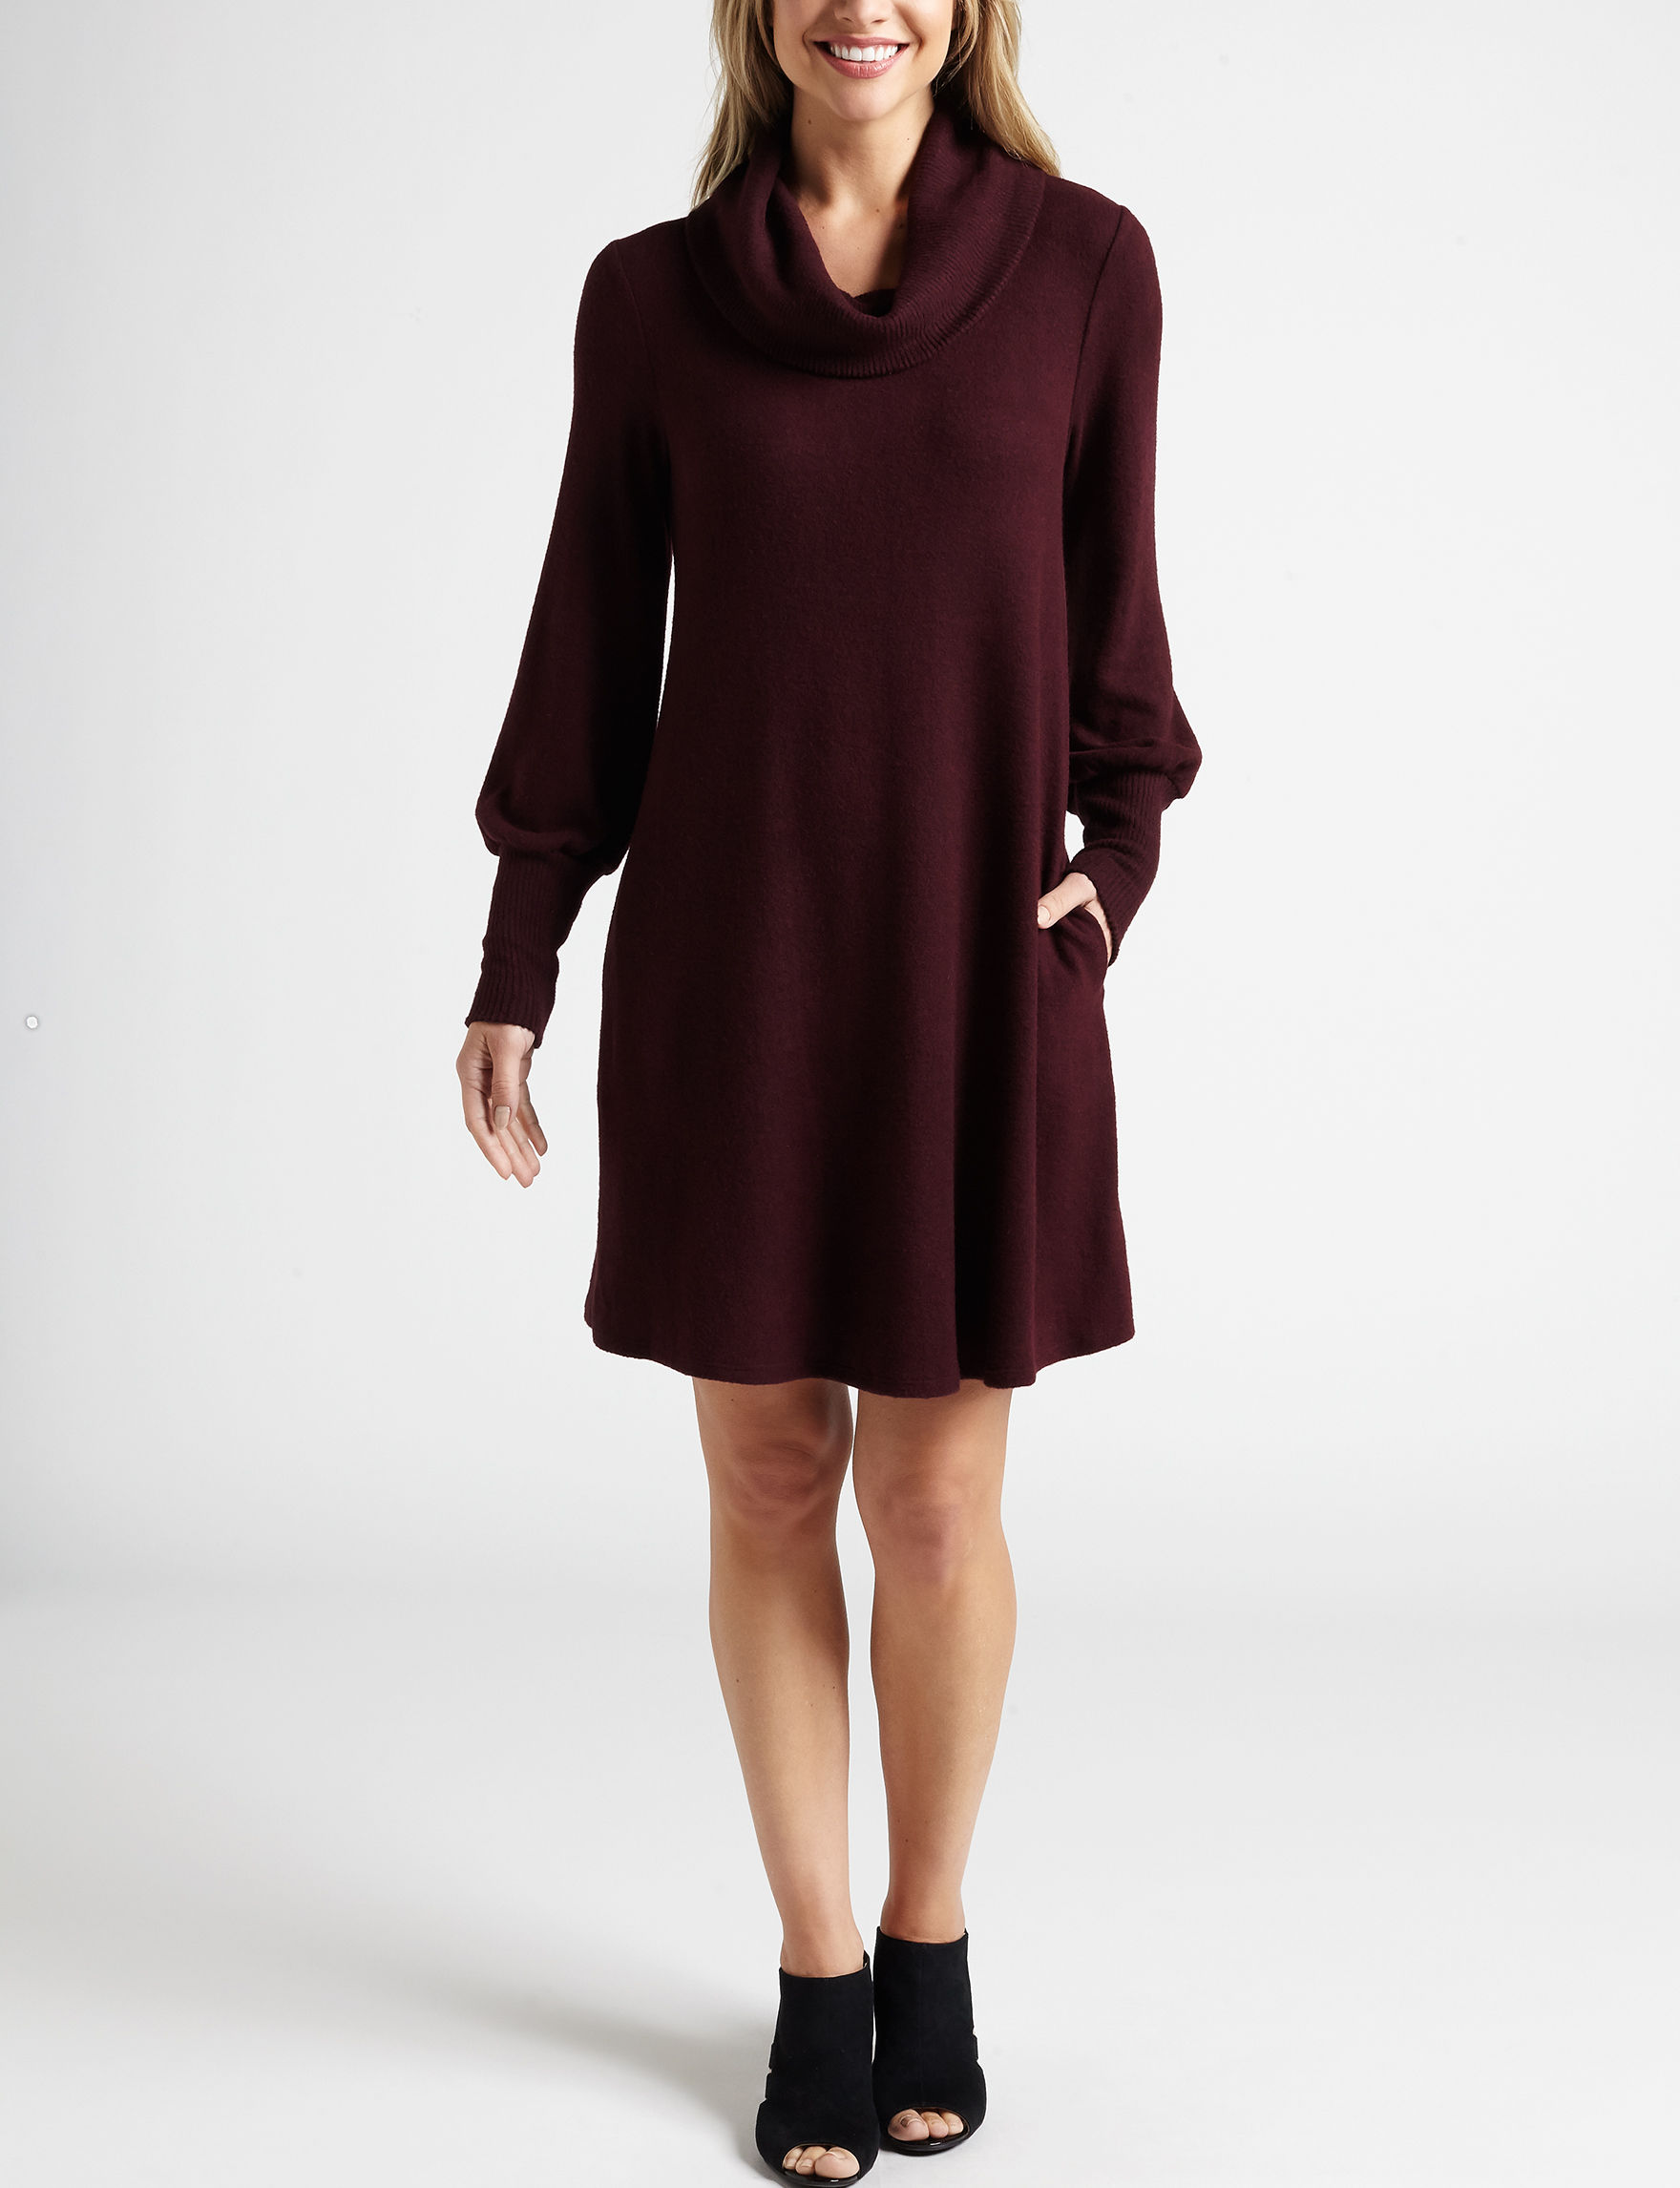 A. Byer Plum Everyday & Casual Sweater Dresses